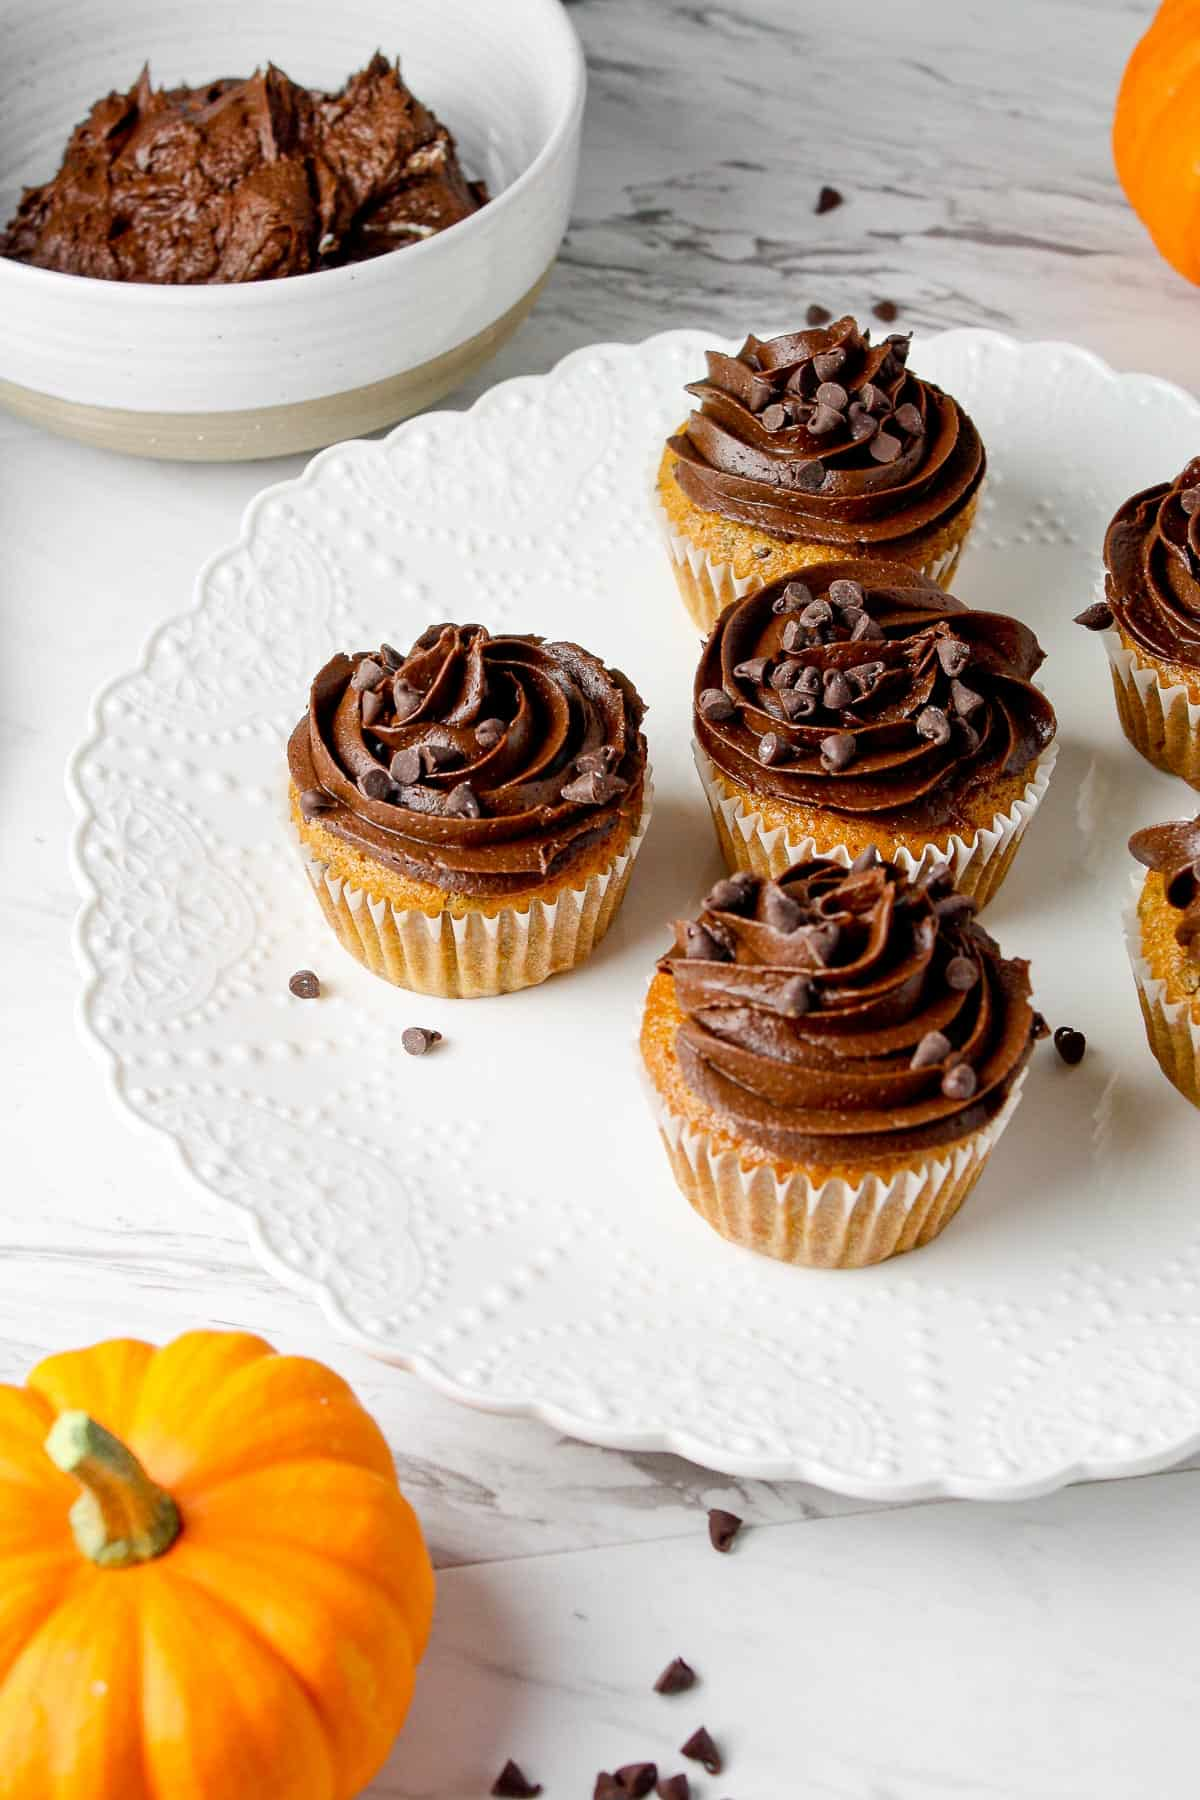 Gluten Free Pumpkin Cupcakes with Chocolate Frosting   Hungry Foodie